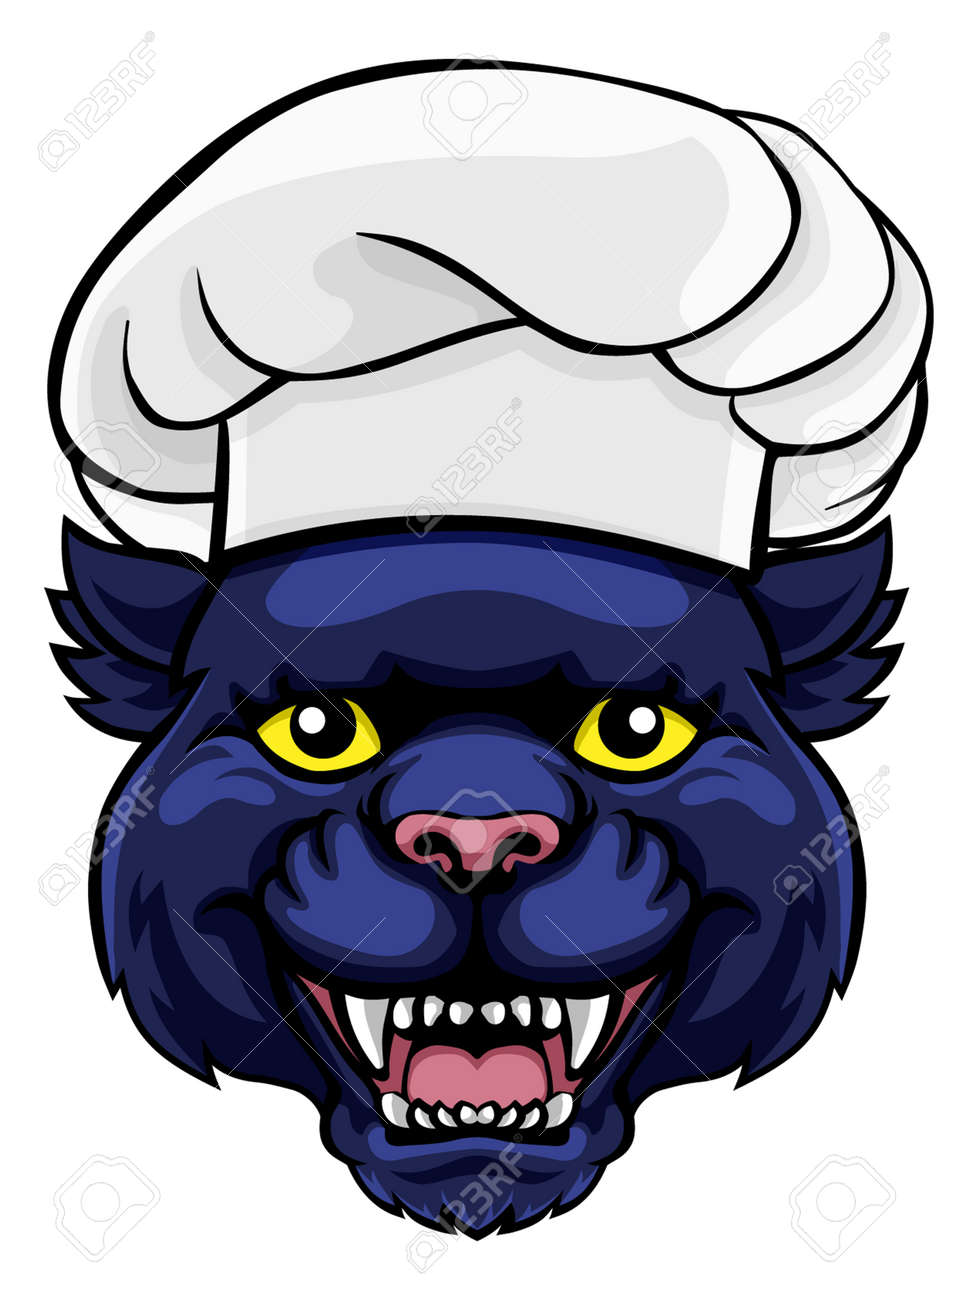 Panther Chef Mascot Cartoon Character - 130165778